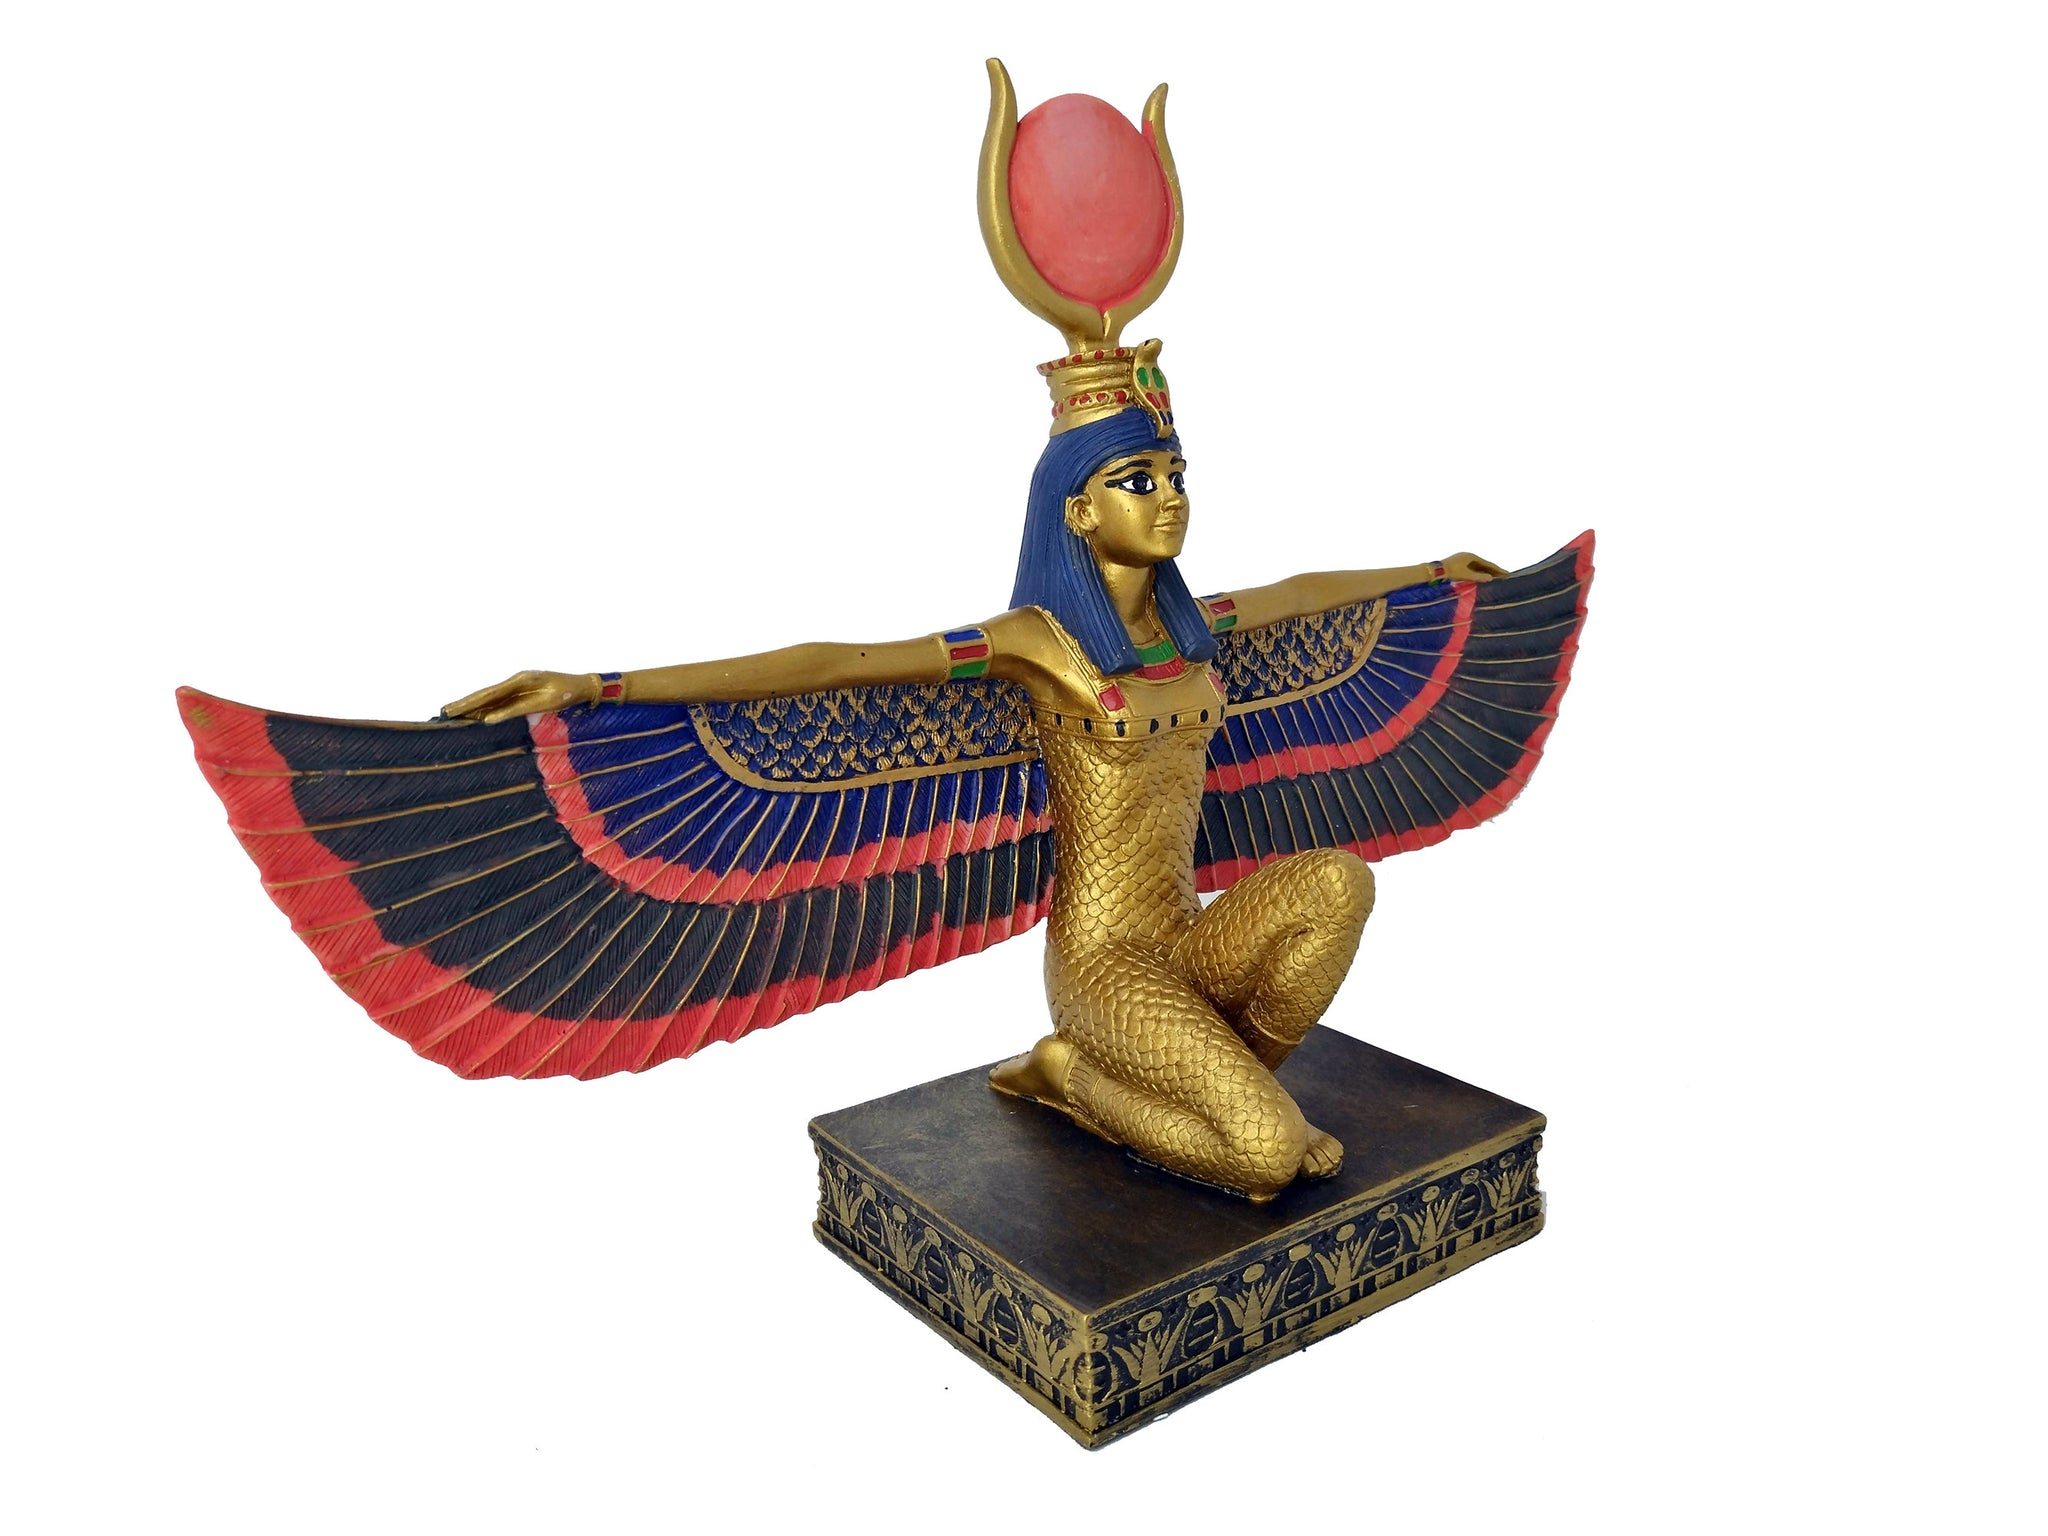 Medium Egyptian Goddess Isis Statue - Ancient Egyptian Goddess Isis With Wings Statue - 11.4 inches / 29 cm